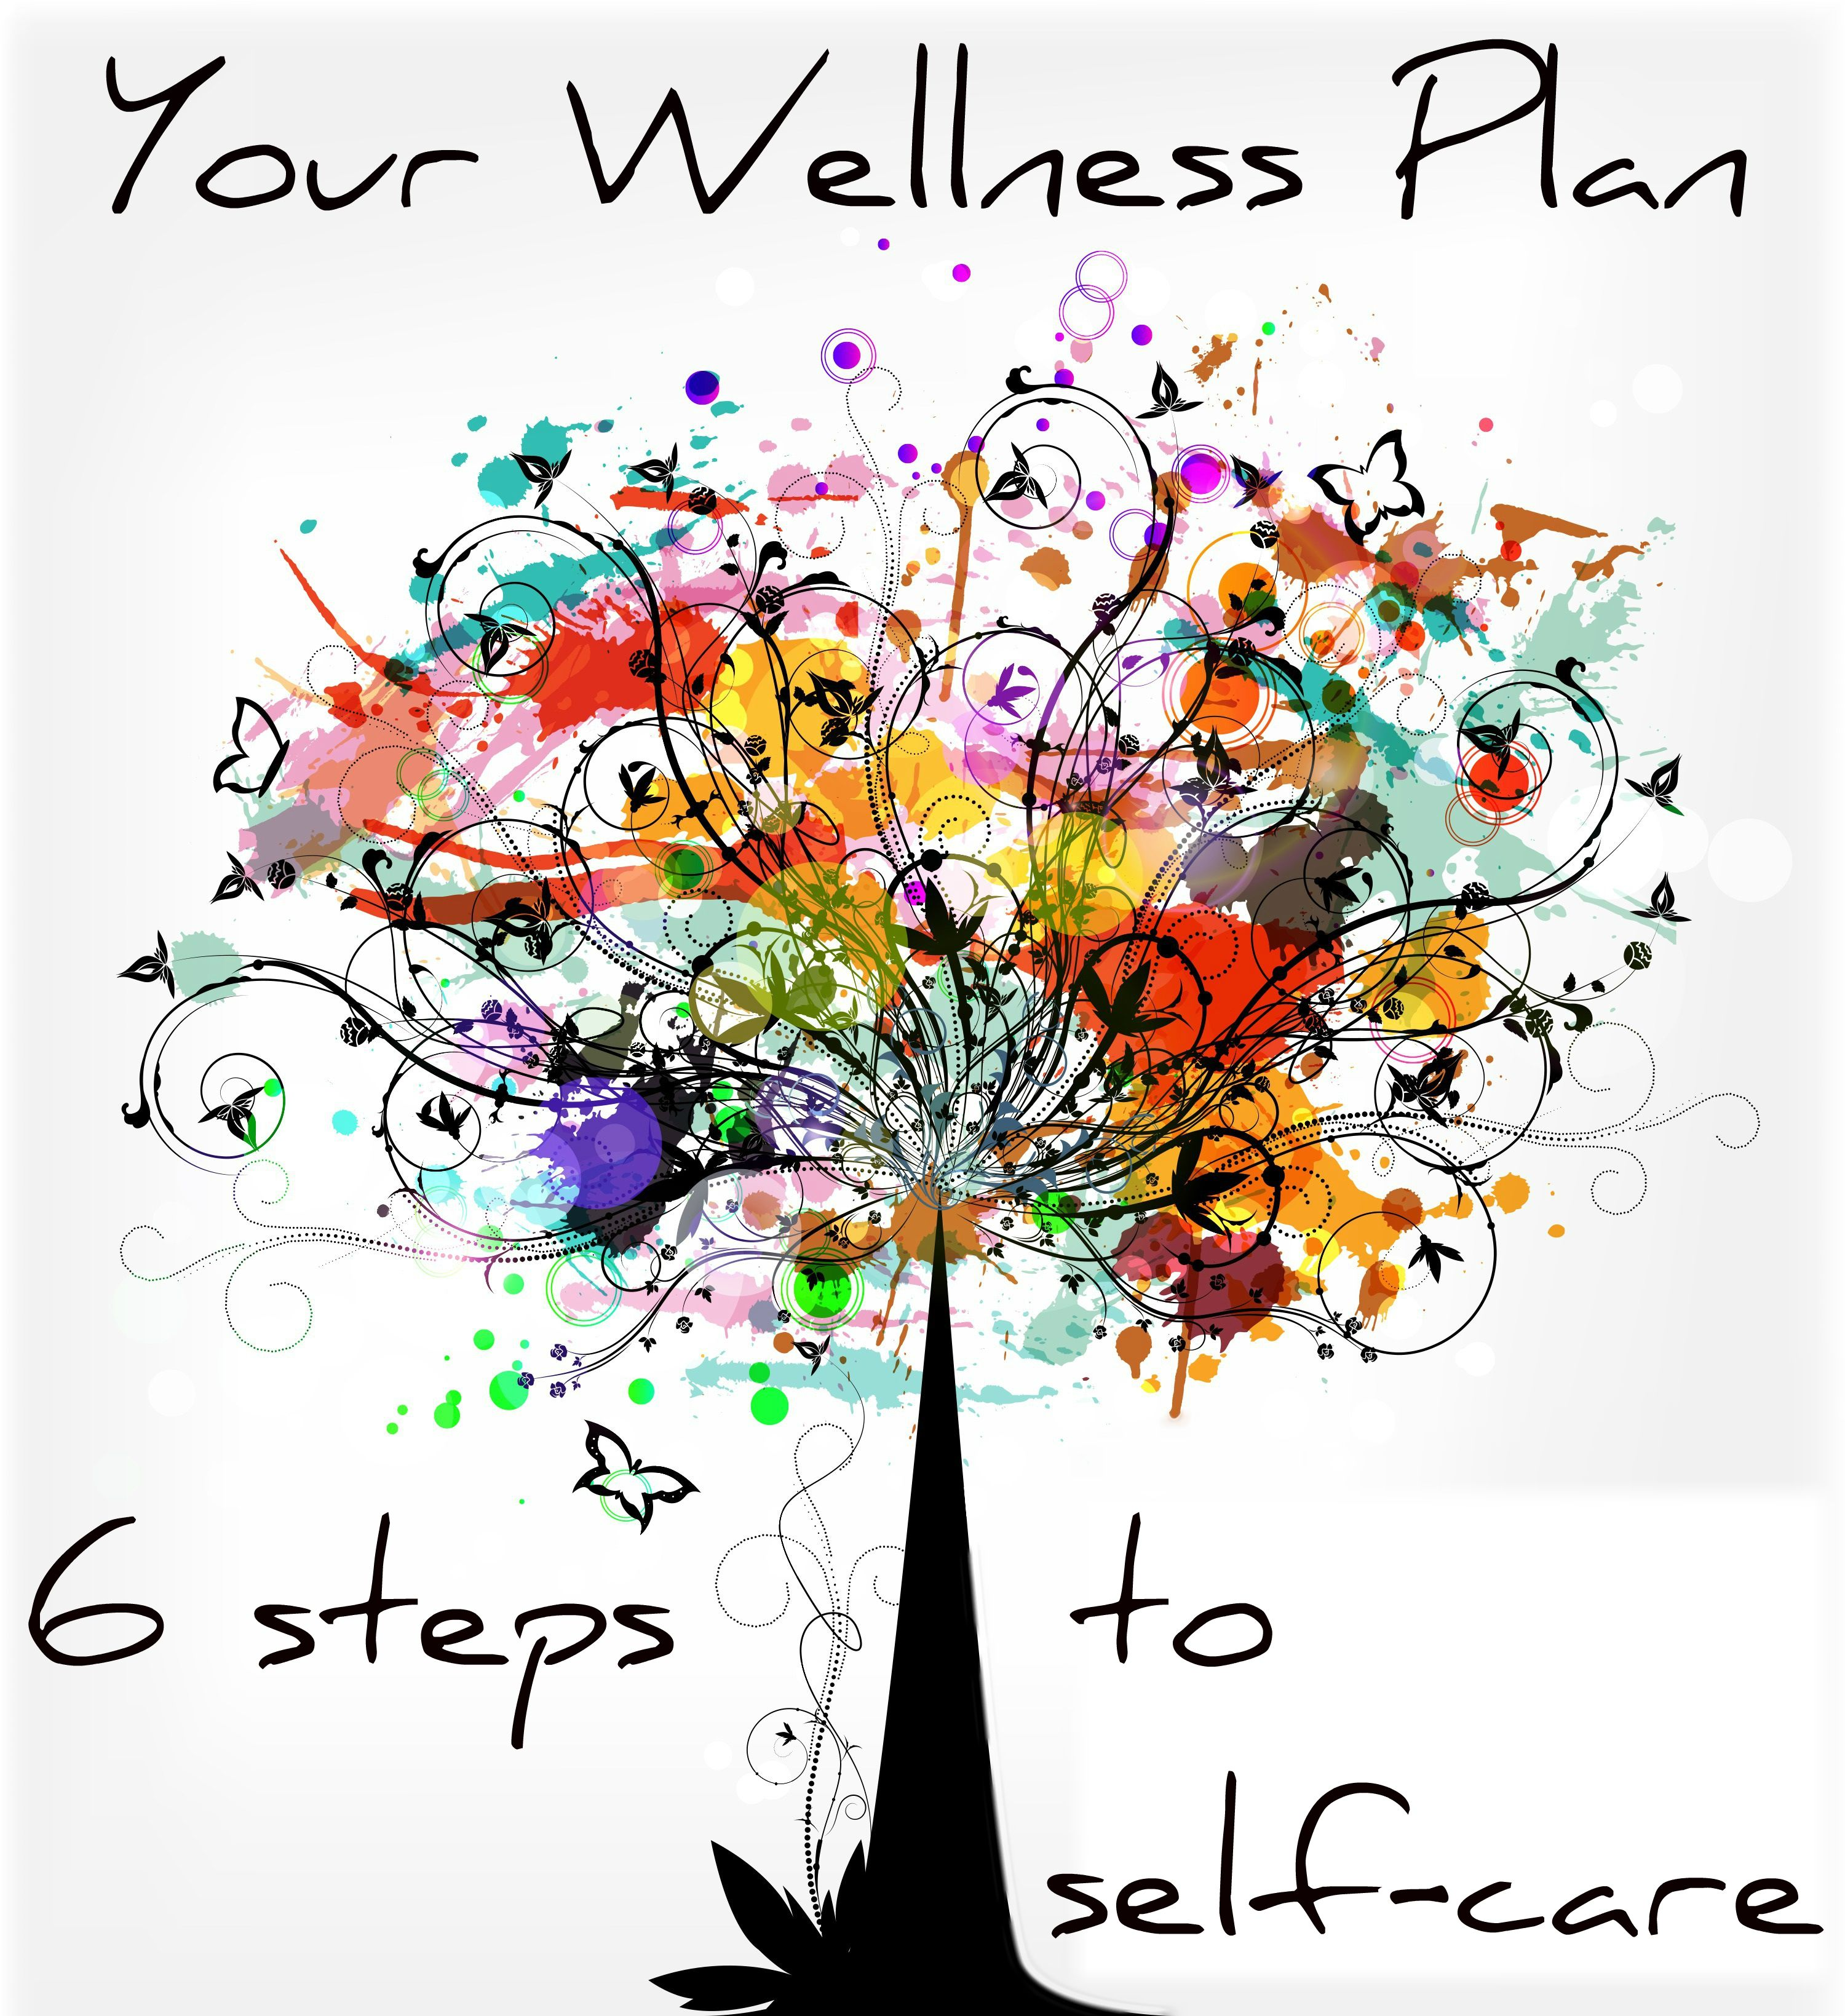 How To Make A Wellness Plan For An Awesome You